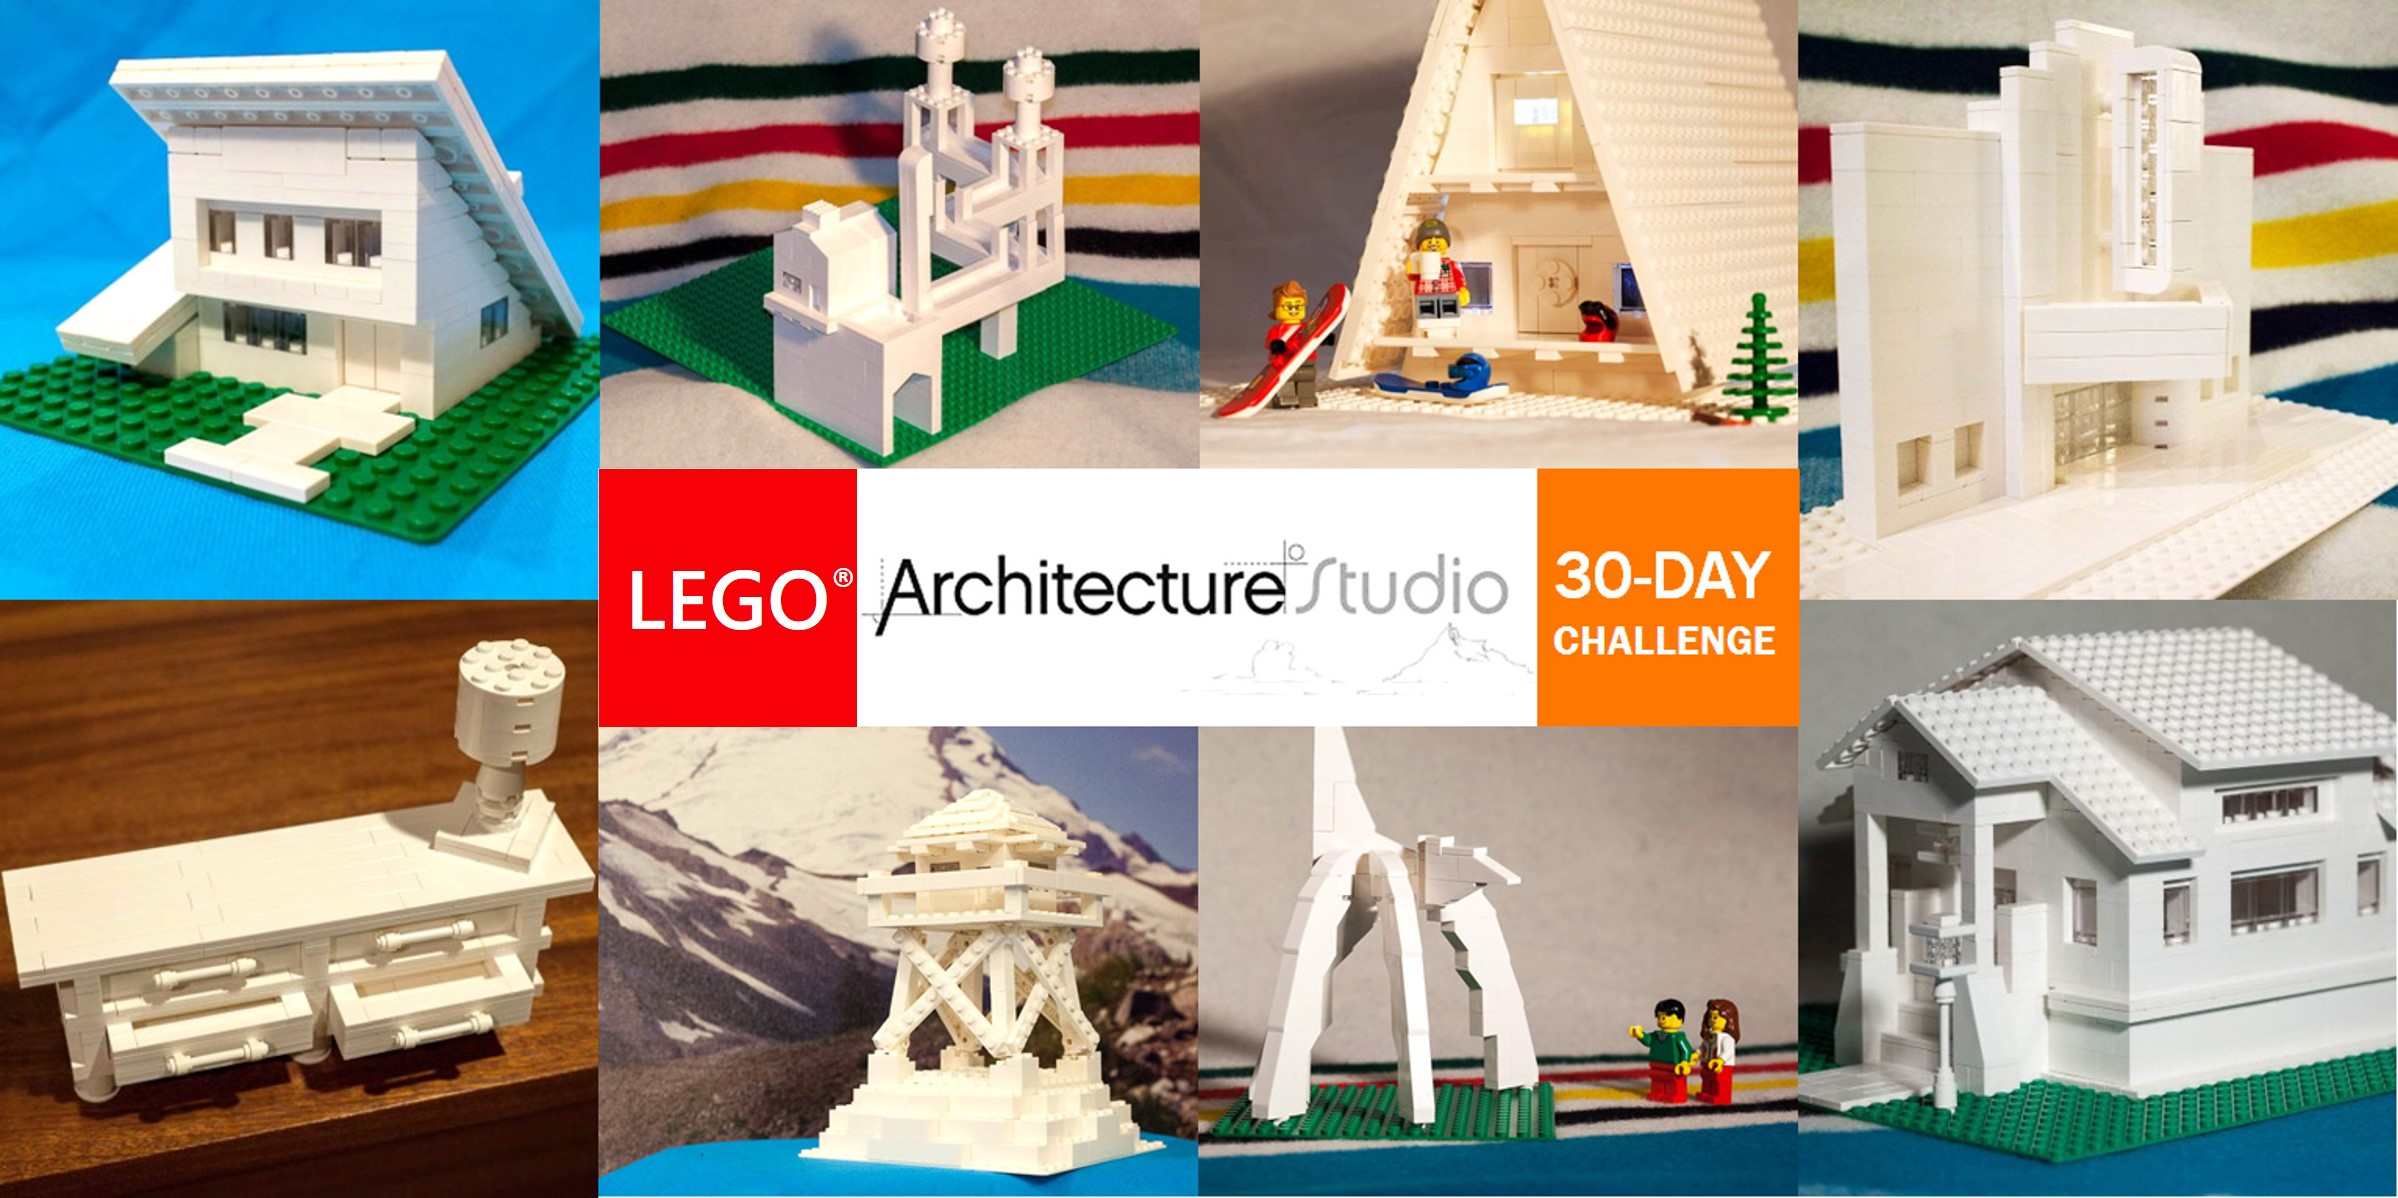 legos build confidence through beautiful architecture New flying airplane and modern architecture building beautiful view of historic parliament building in the heap messy toy multicolor lego building bricks.